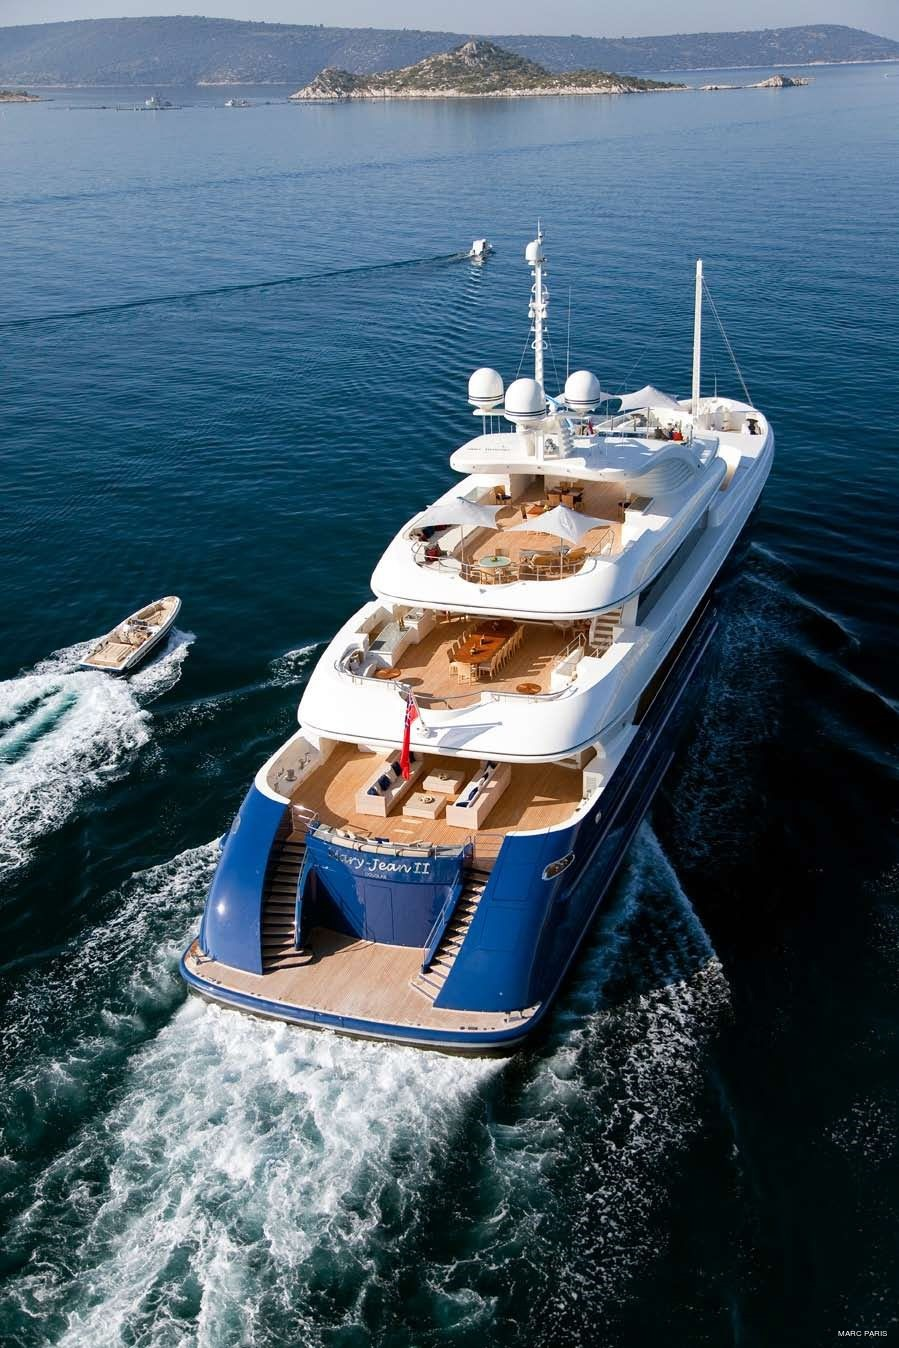 Decks: Yacht MARY-JEAN II's From Above Aspect Image